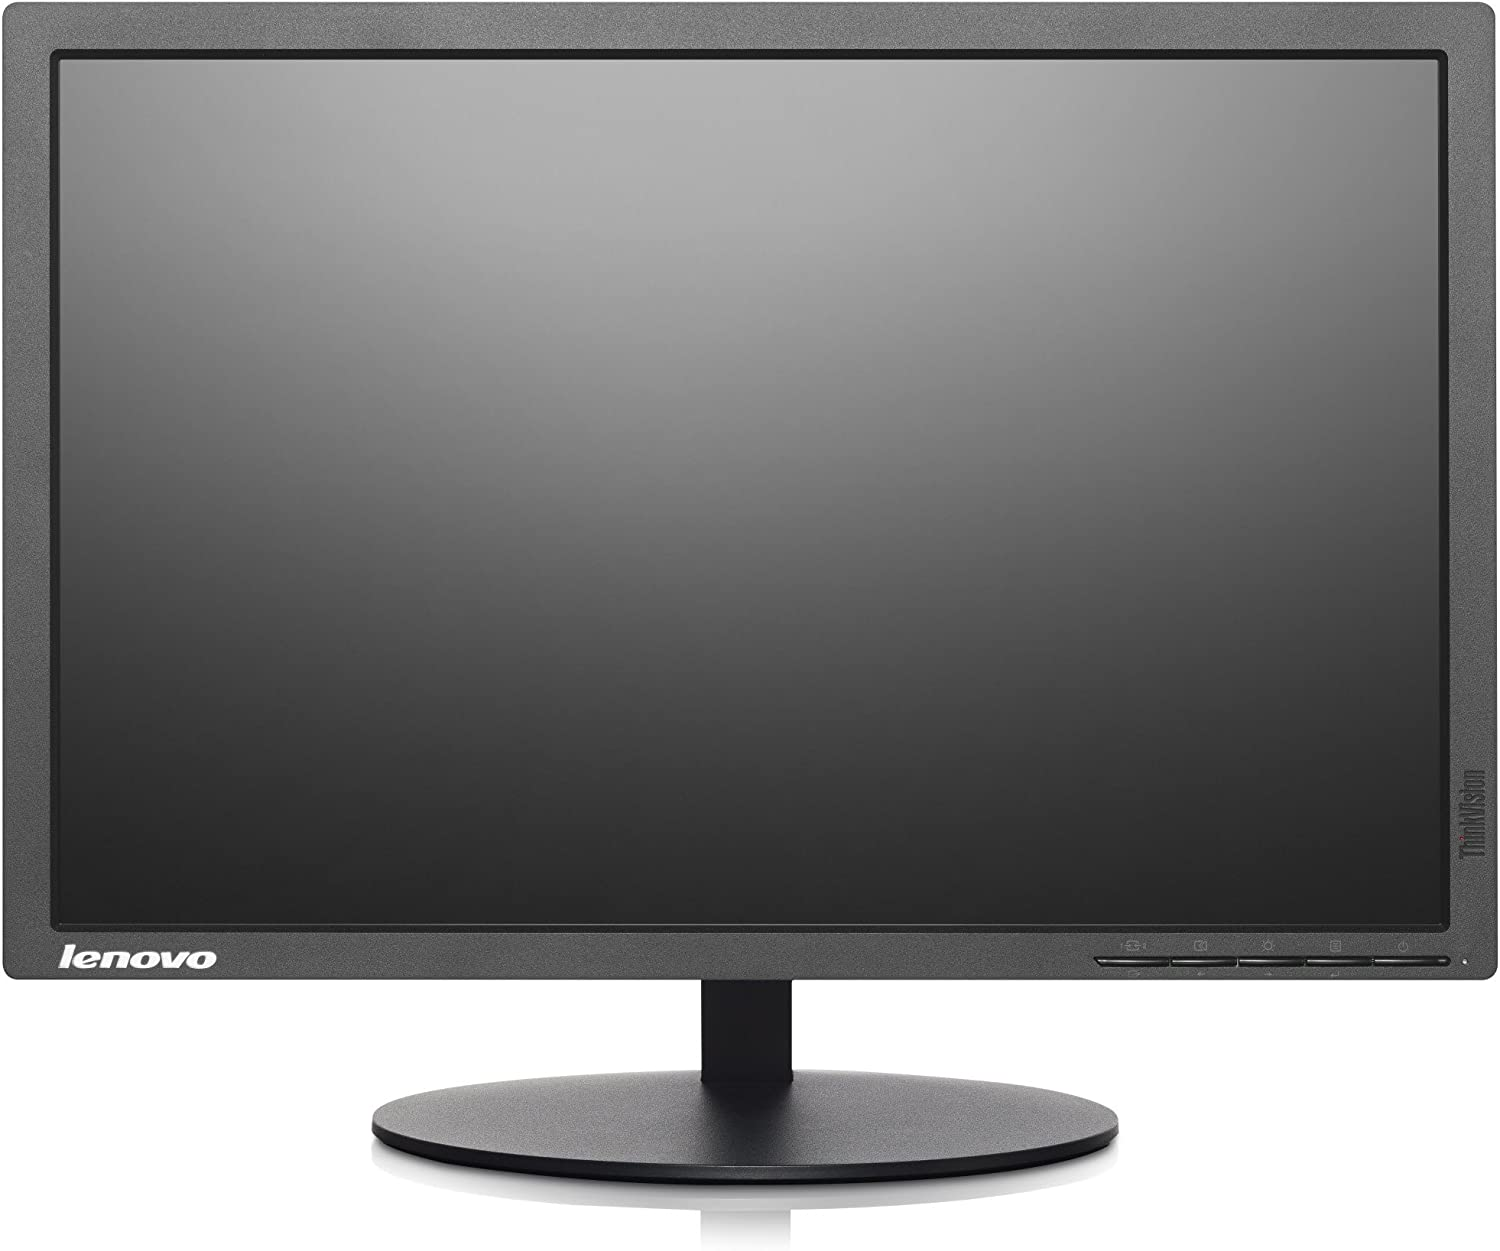 T2054P 19.5IN LED LCD MON 14X9 7MS HDMI